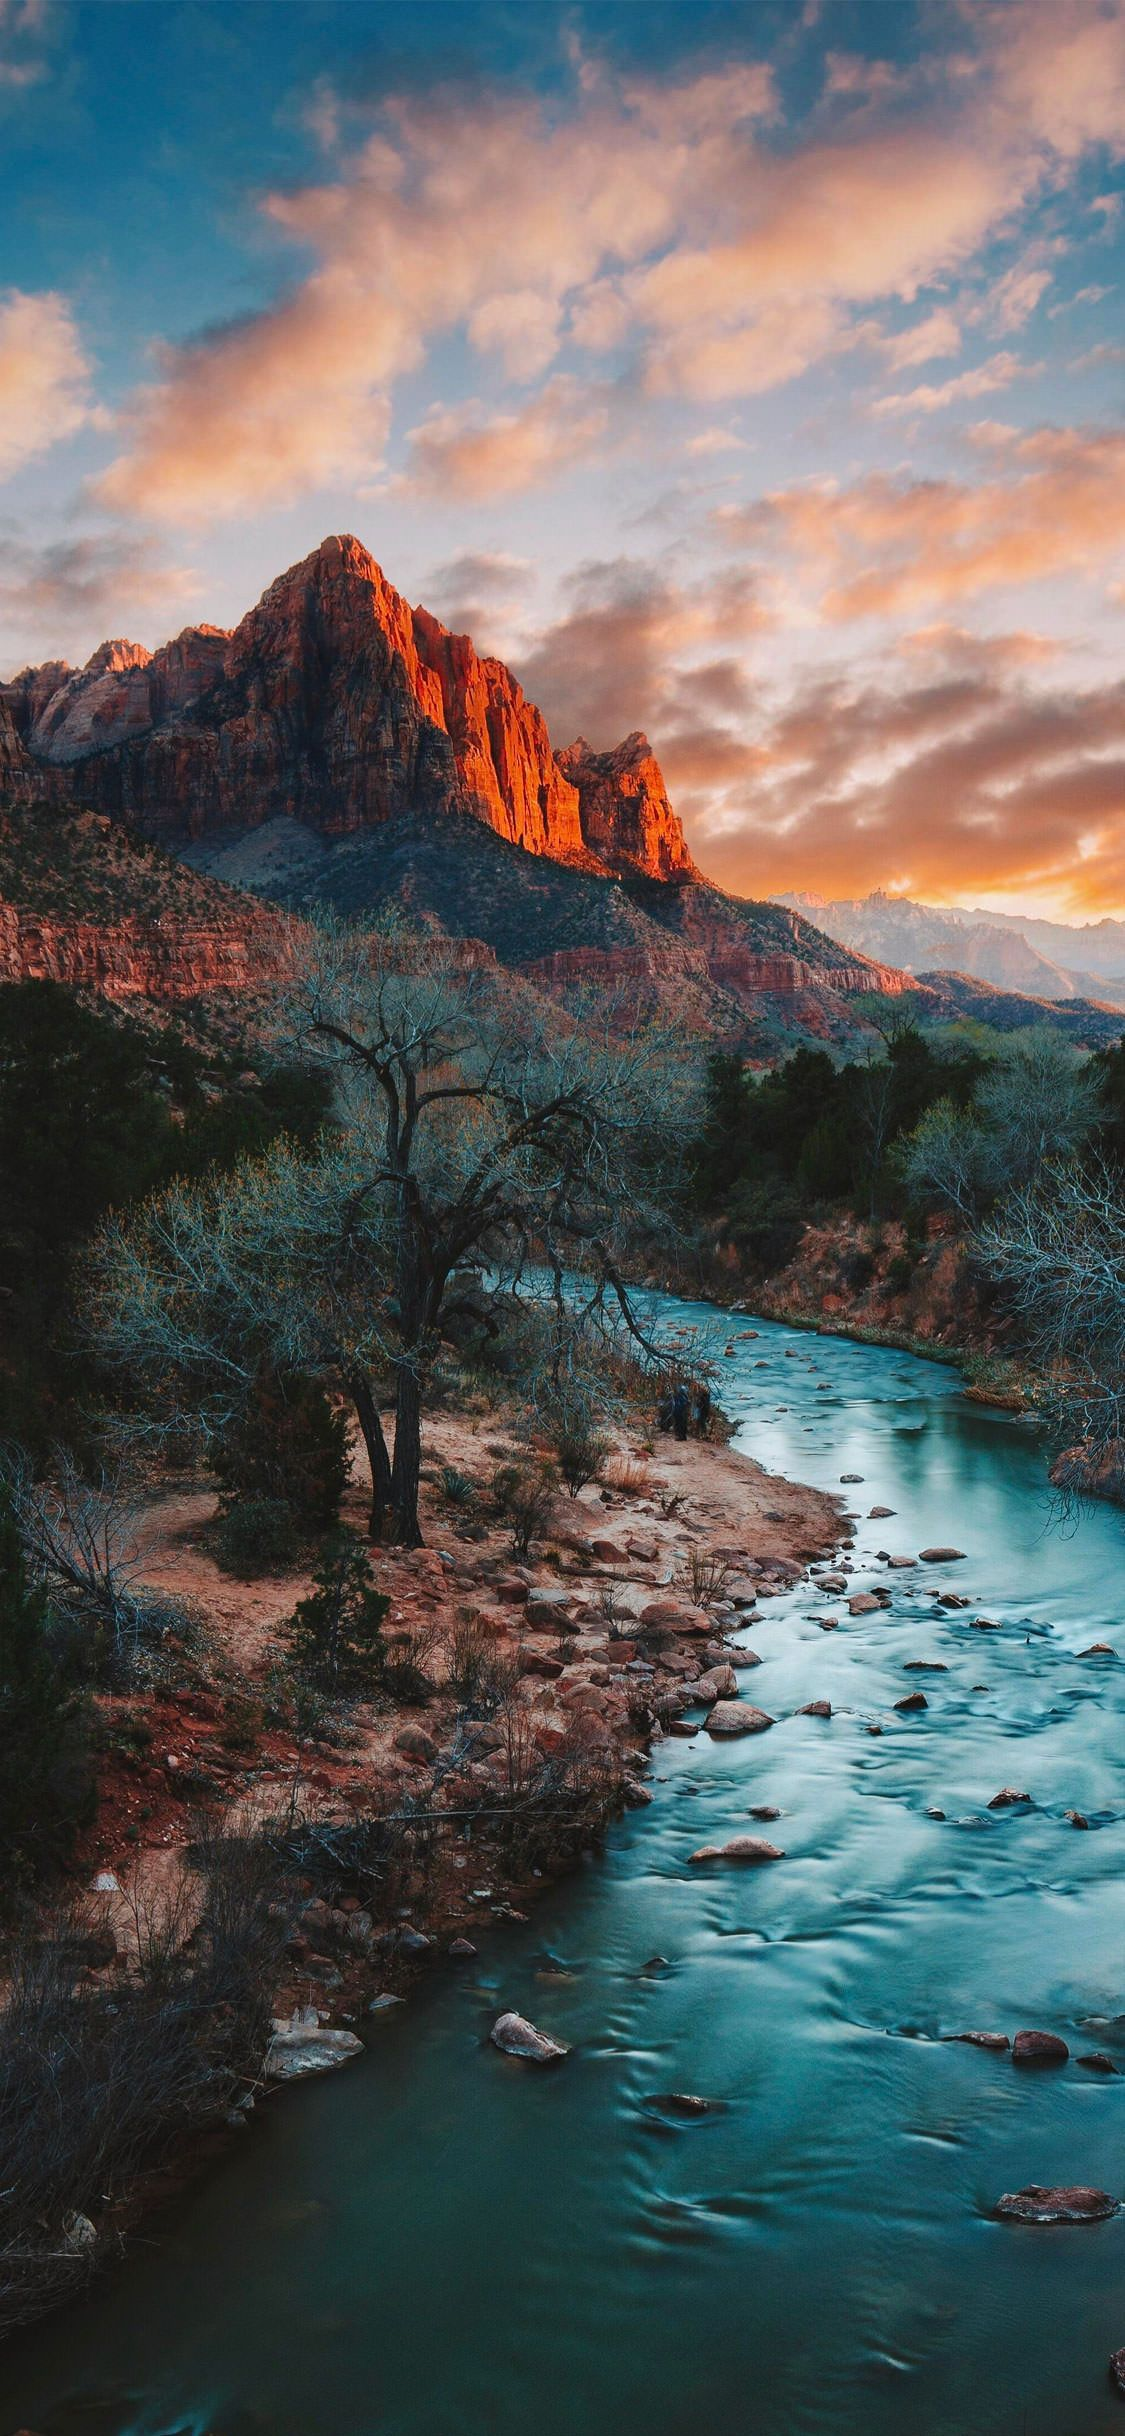 The Watchman From The Bridge Zion National Park Ut